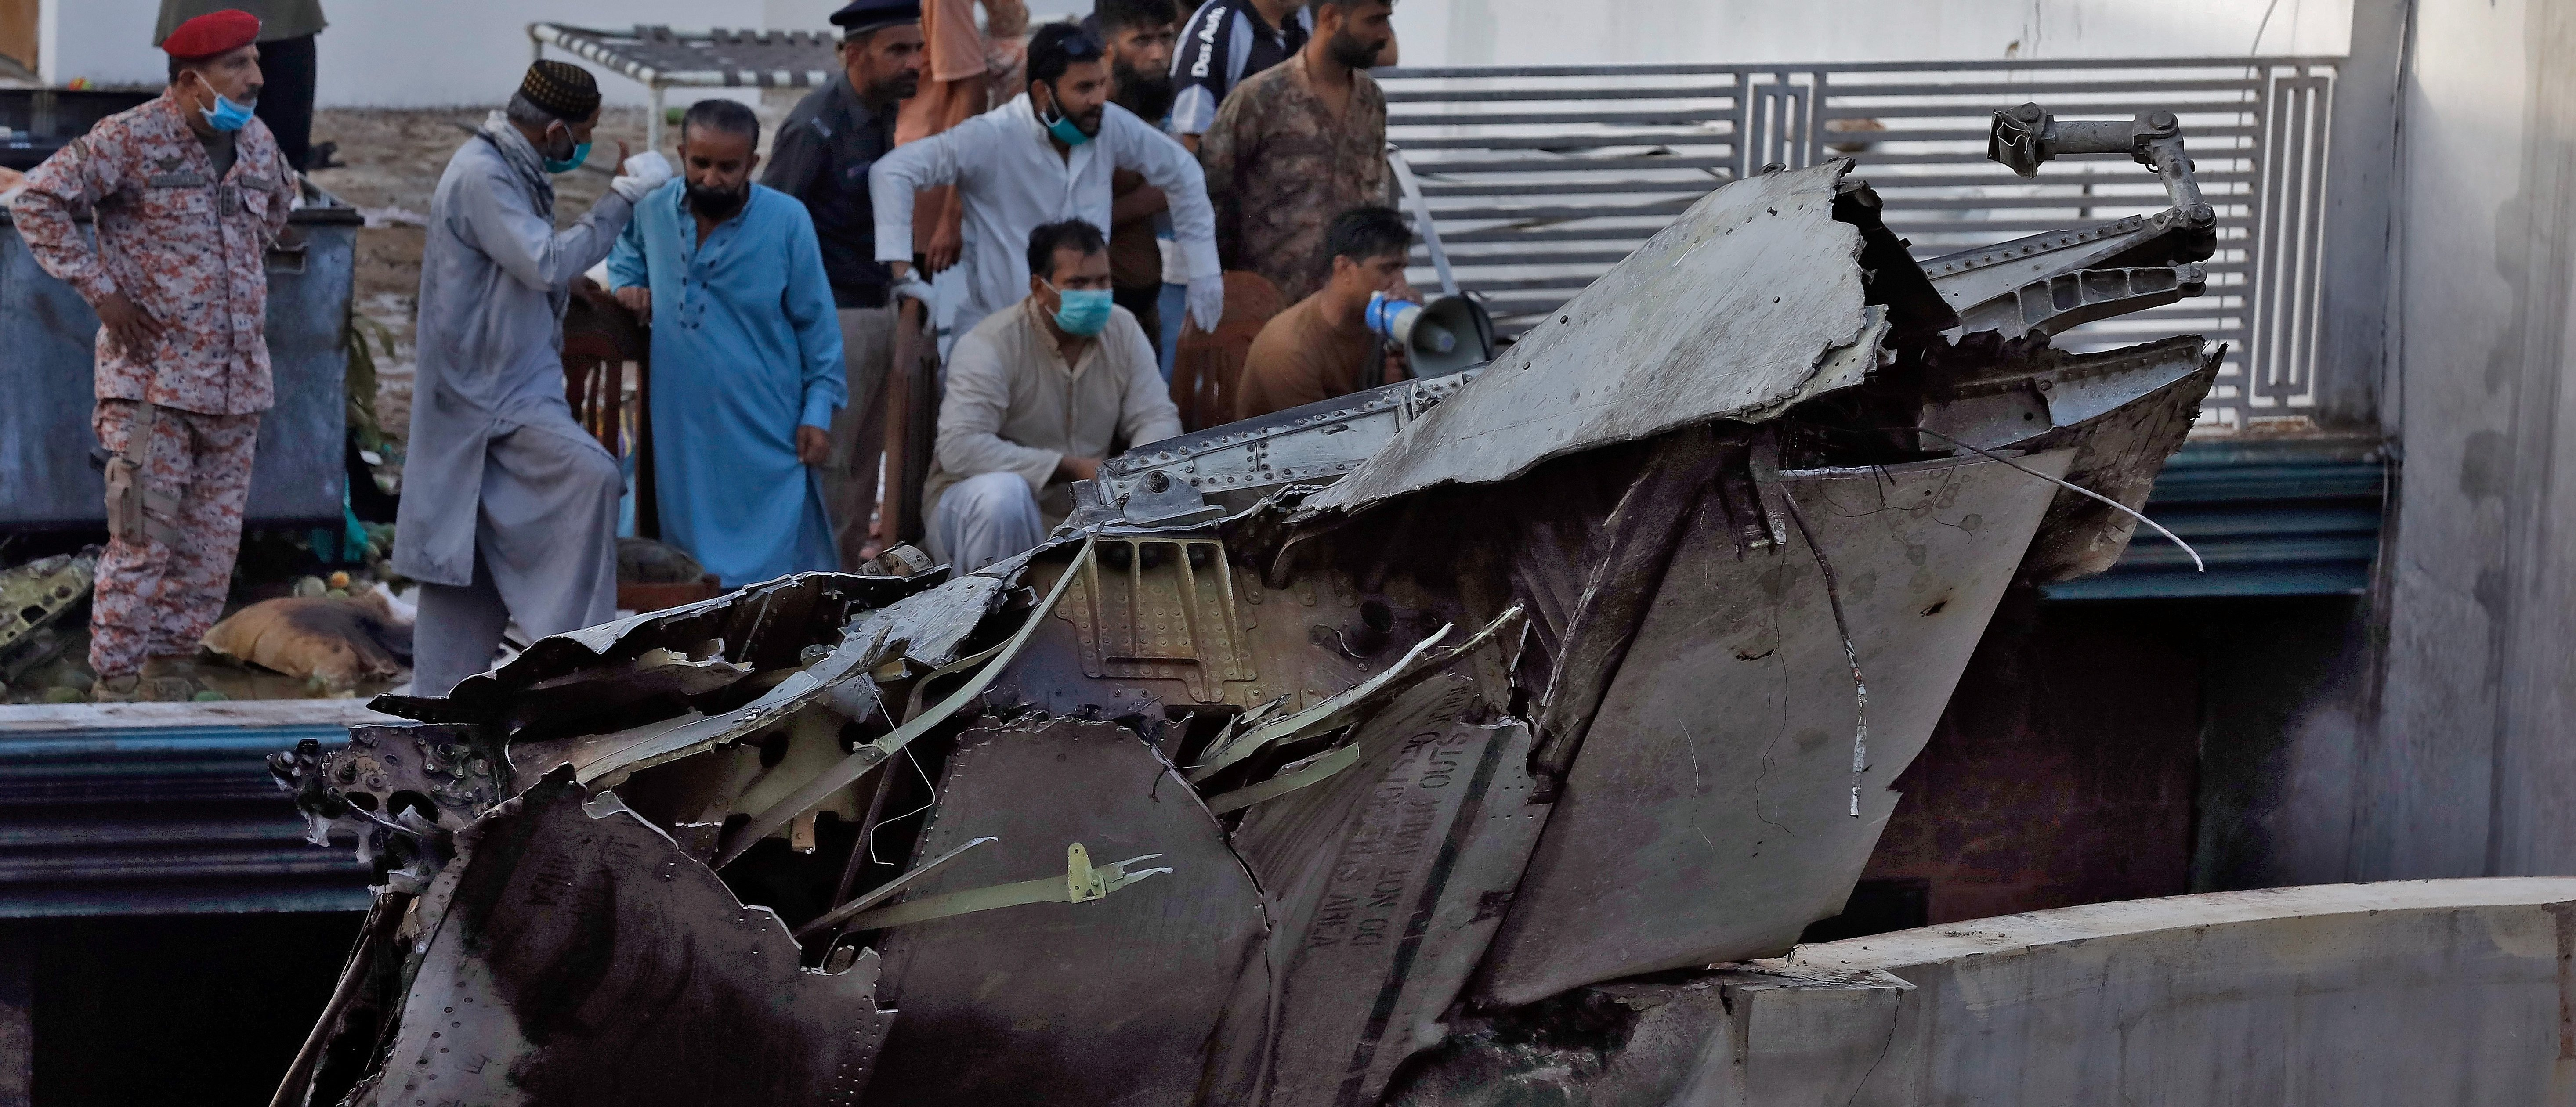 People stand next to the debris of a plane after crashed in a residential area near an airport in Karachi, Pakistan May 22, 2020. REUTERS/Akhtar Soomro - RC2PTG9N20SG